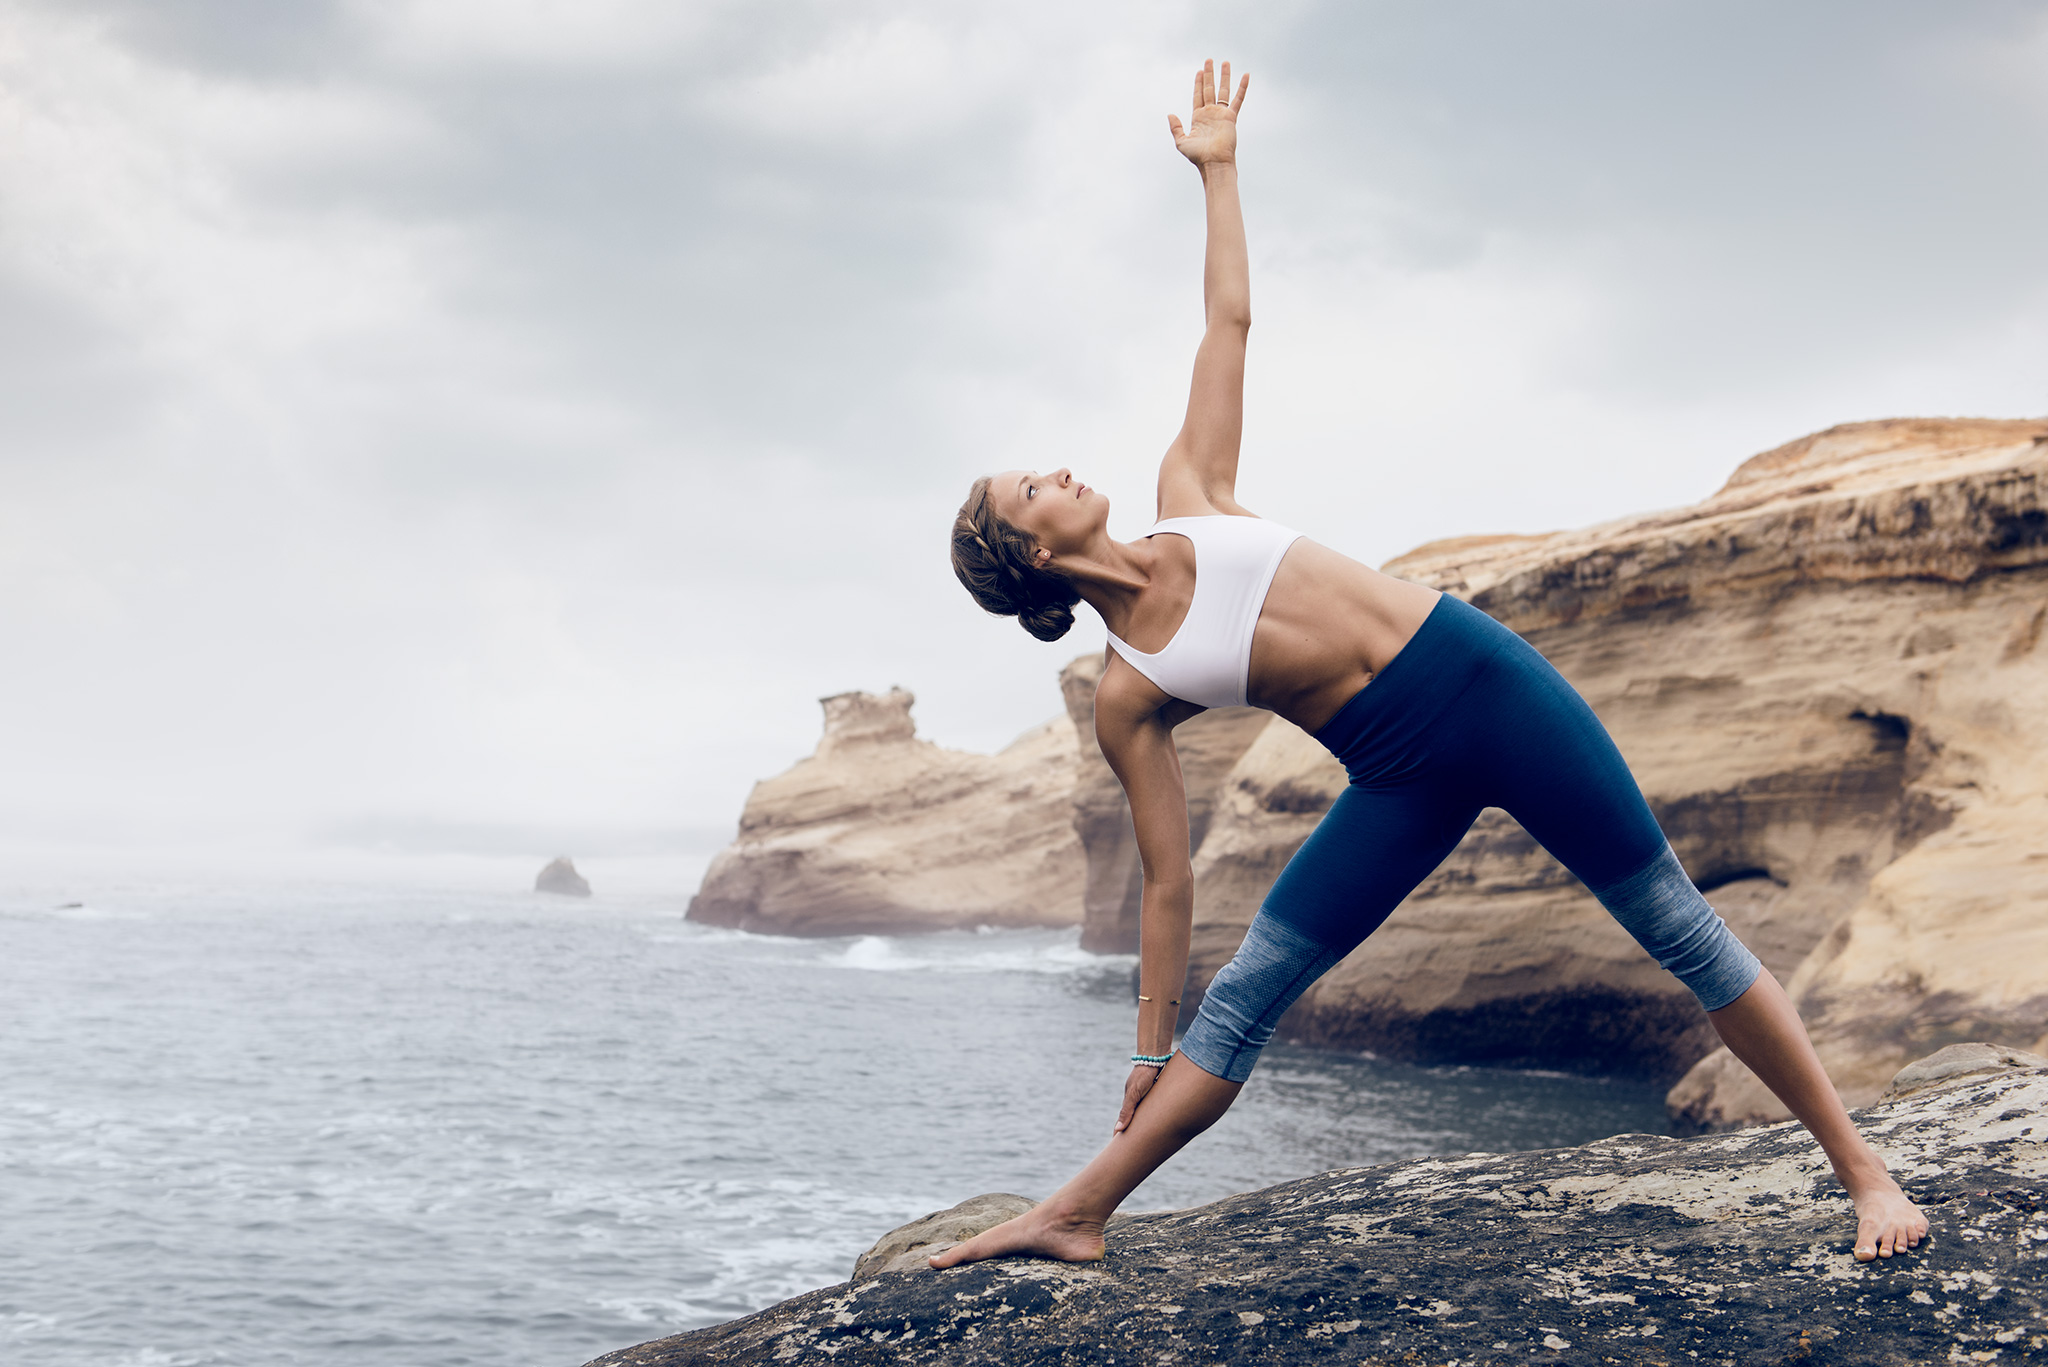 Model Yoga Stretch on the Beach | Zach Ancell Photography